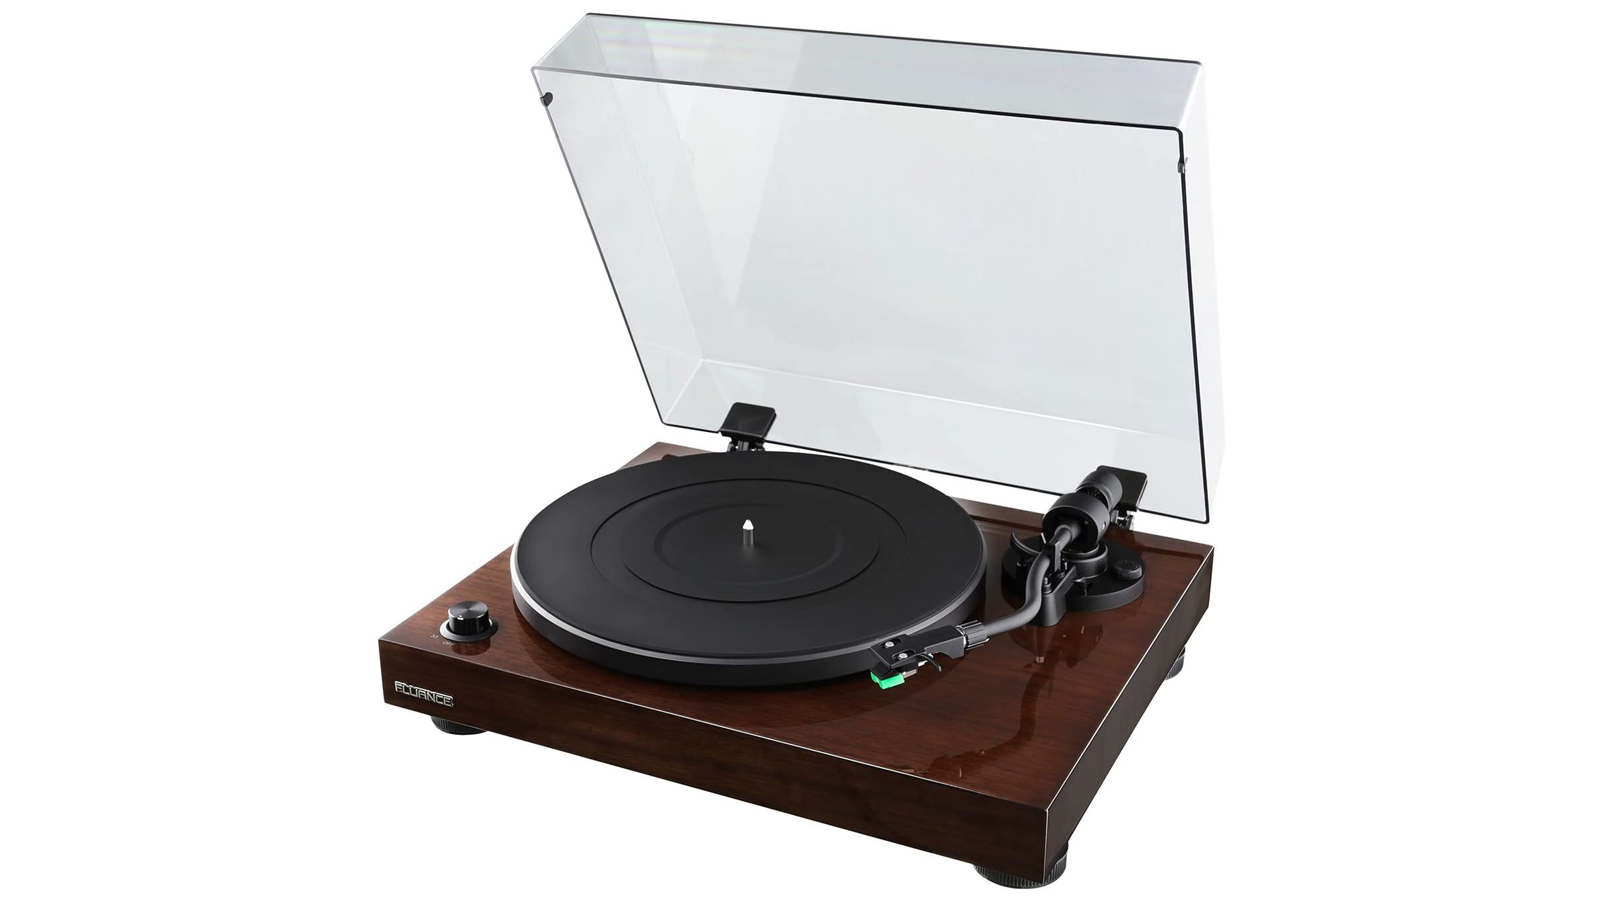 Fluance RT81 turntable with a wooden plinth